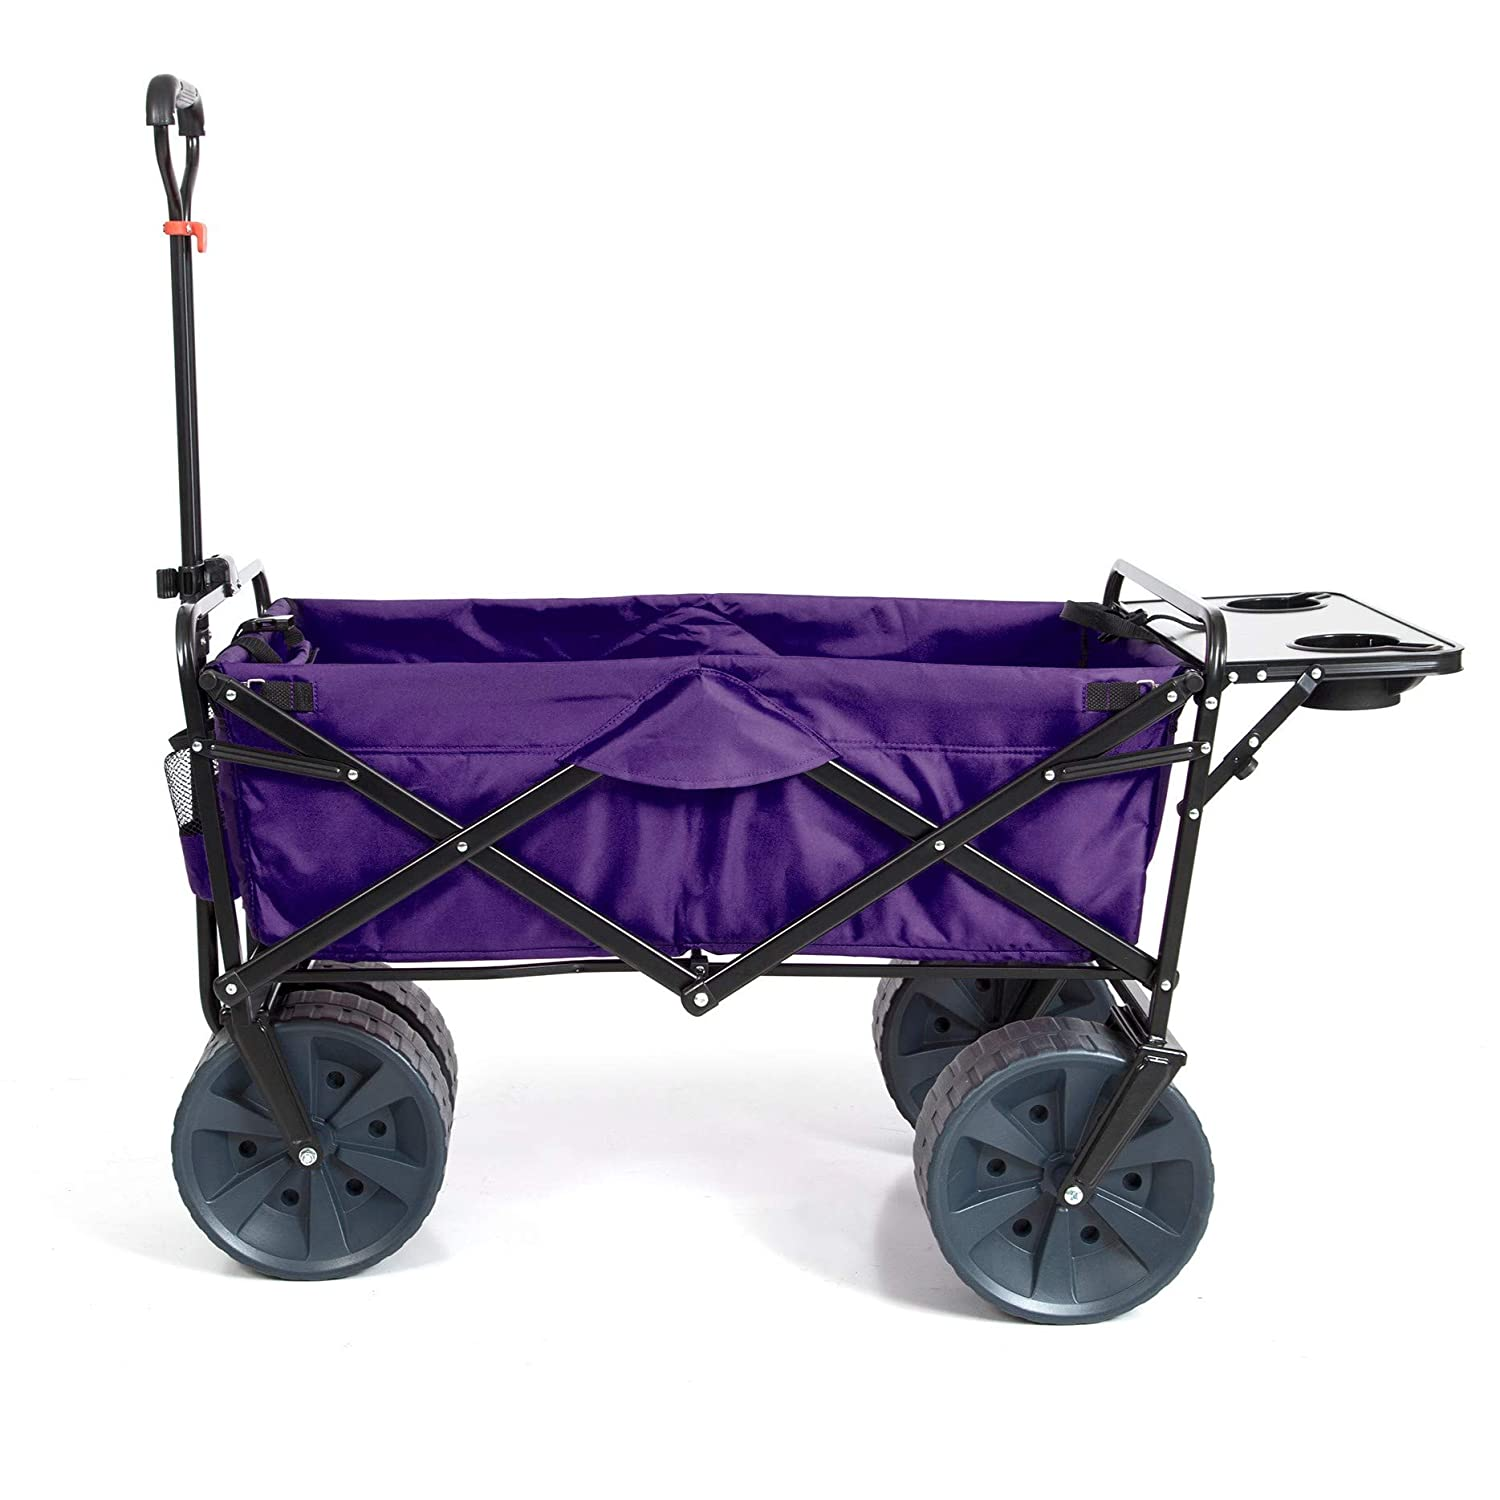 Mac Sports Heavy Duty Collapsible Folding All Terrain Utility Beach Wagon Cart with Table Purple Black